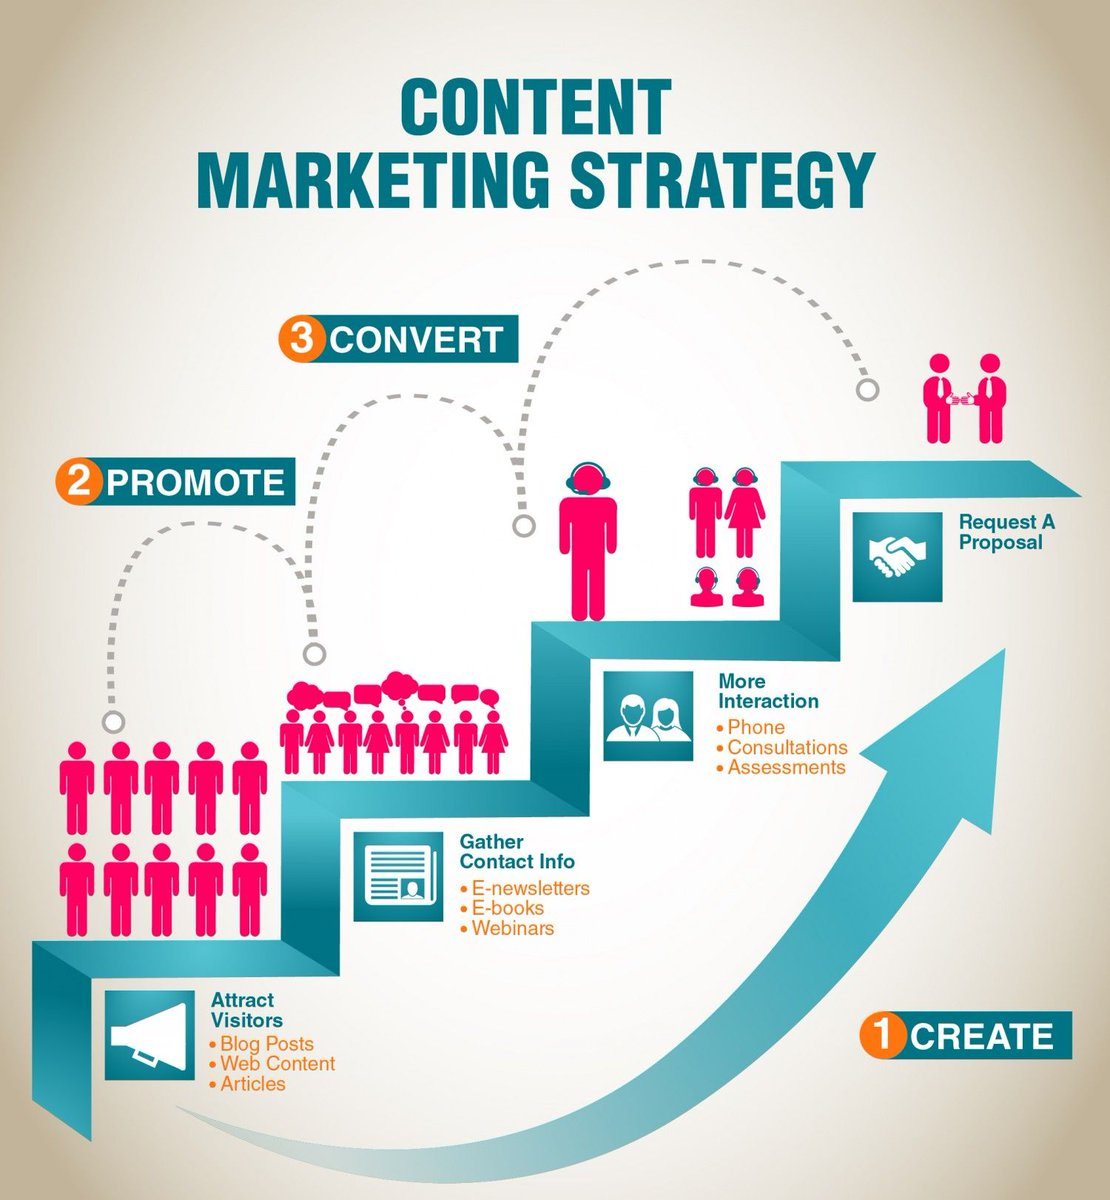 strategy of #Content #Marketing  https:// buff.ly/2wA9QSb  &nbsp;   #ContentMarketing #SEO #Services #Makeyourownlane #InboundMarketing #SEO #Technology <br>http://pic.twitter.com/Mpxao7dy2r